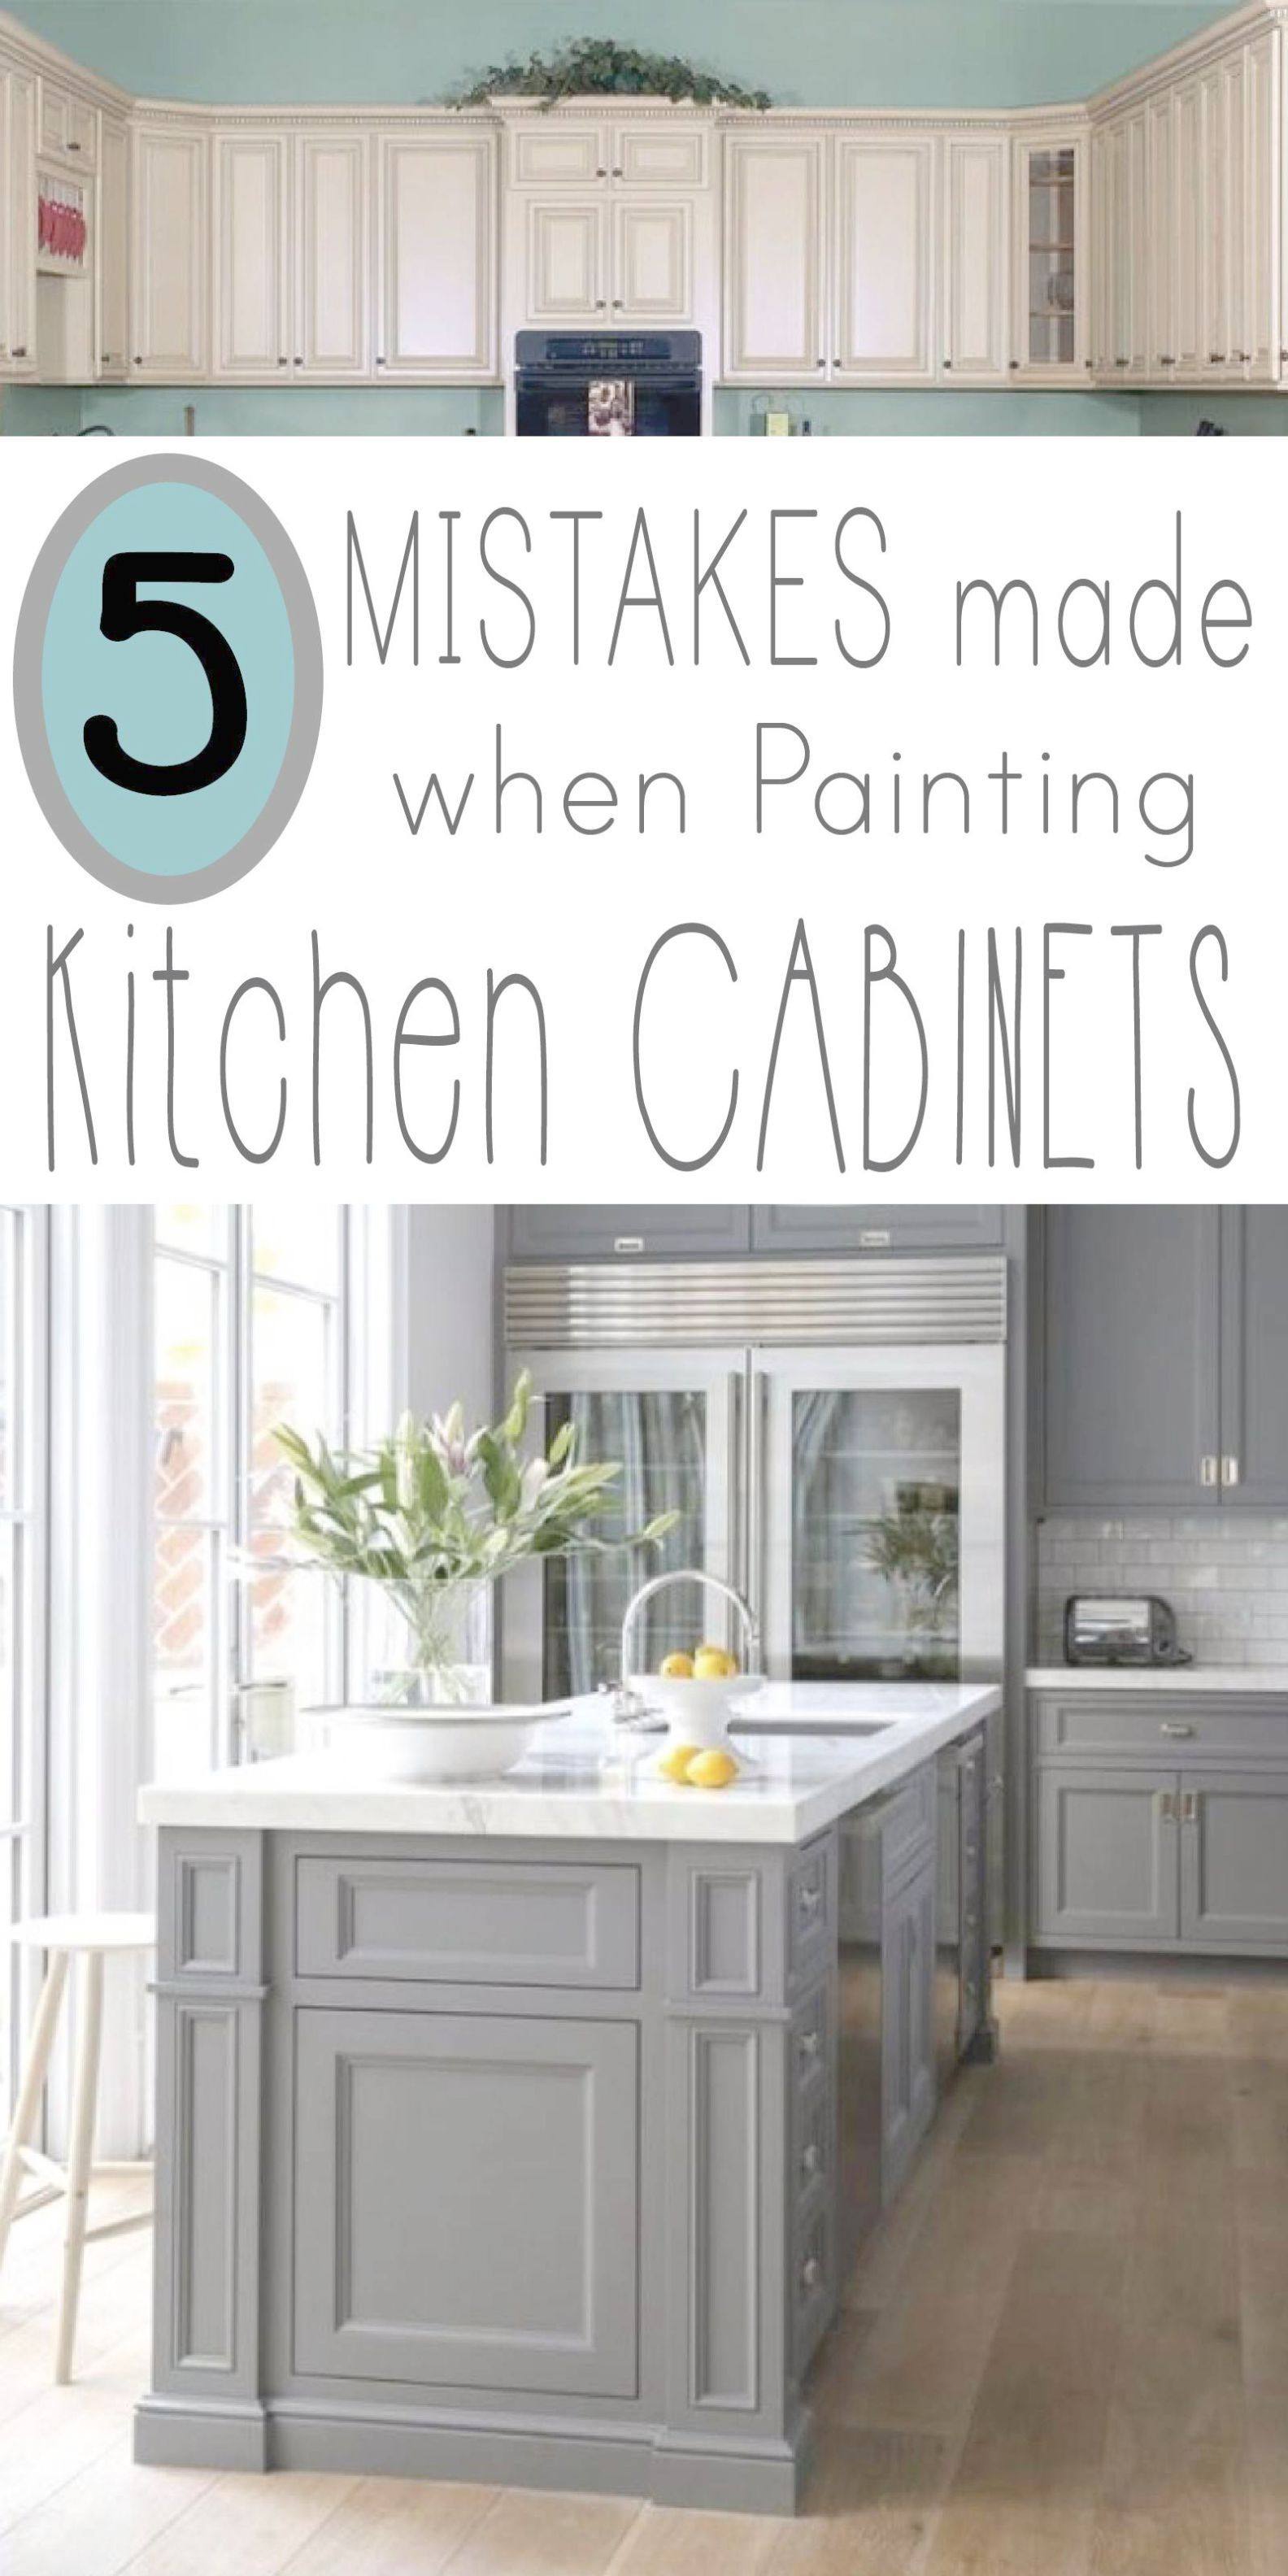 Kitchen Cabinet Furniture Online Though Furniture Outlet Fort Myers My Furniture Kitchen Cabinets Painted Grey Kitchen Remodel Small Kitchen Cabinets Makeover